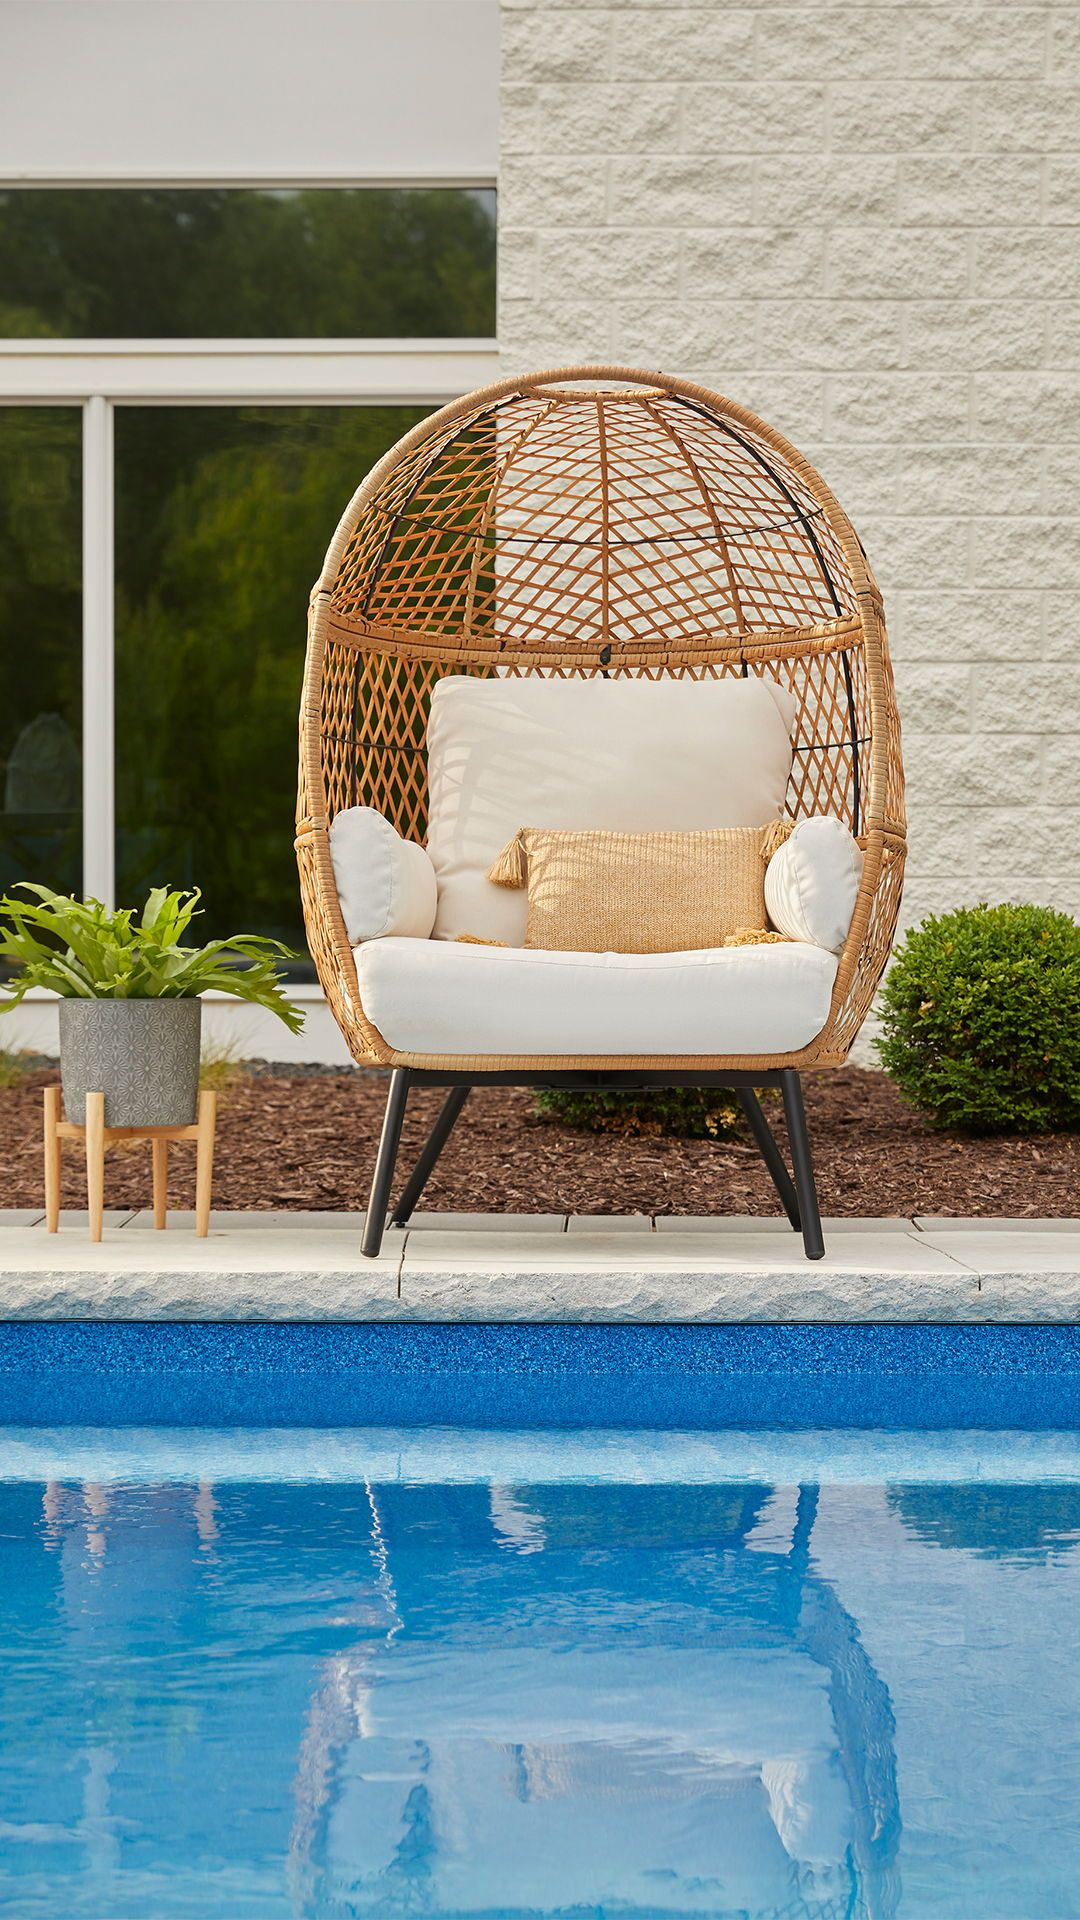 Better Homes And Gardens Ventura Boho Stationary Wicker Egg Chair Walmart Com In 2020 Garden Patio Furniture Wicker Patio Furniture Outdoor Wicker Furniture #replacement #living #room #chair #cushions